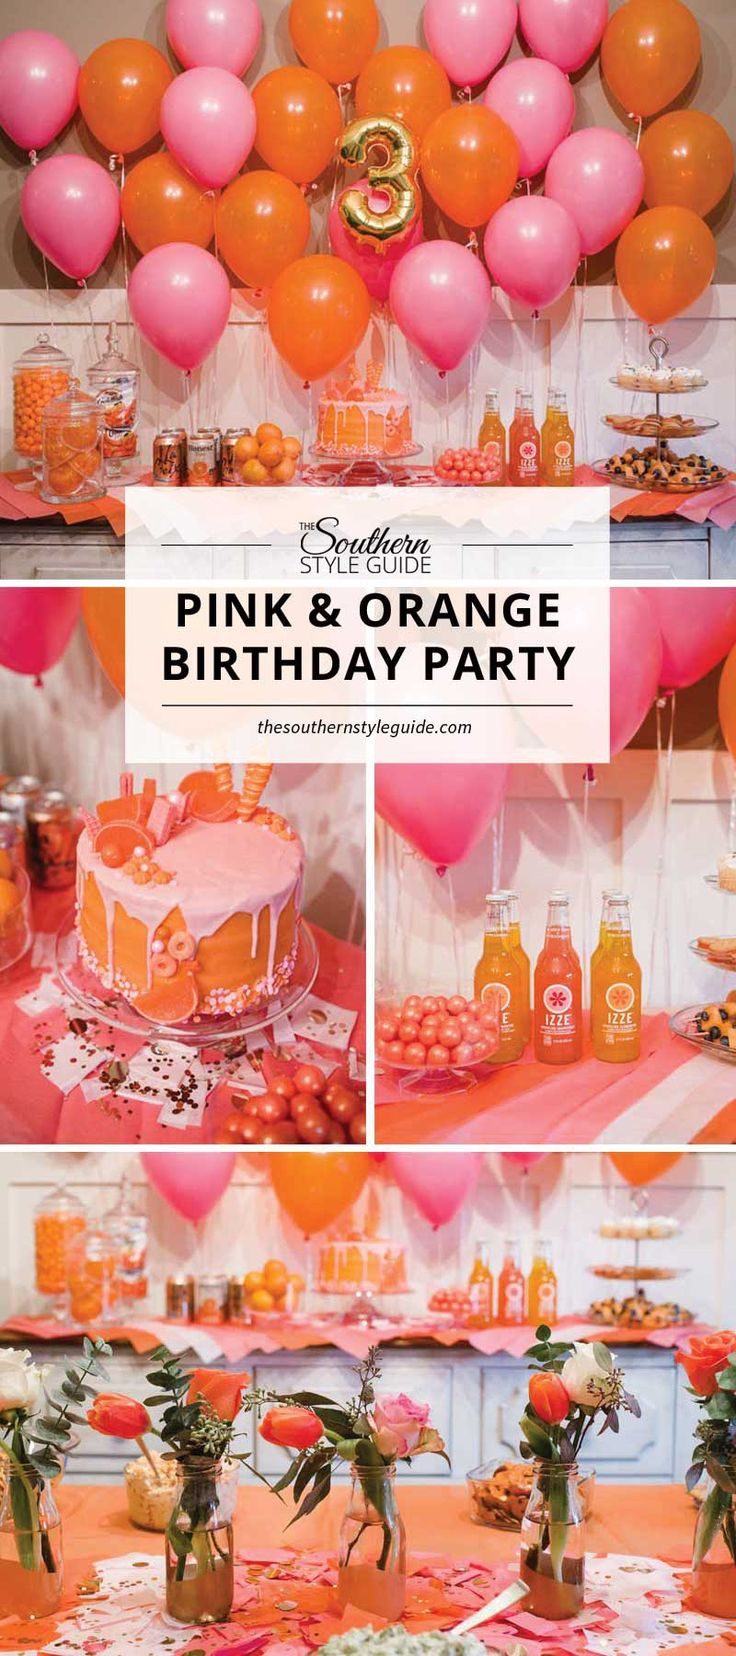 How to throw a color-themed birthday party for little girls. Pink & Orange little girl's birthday party.